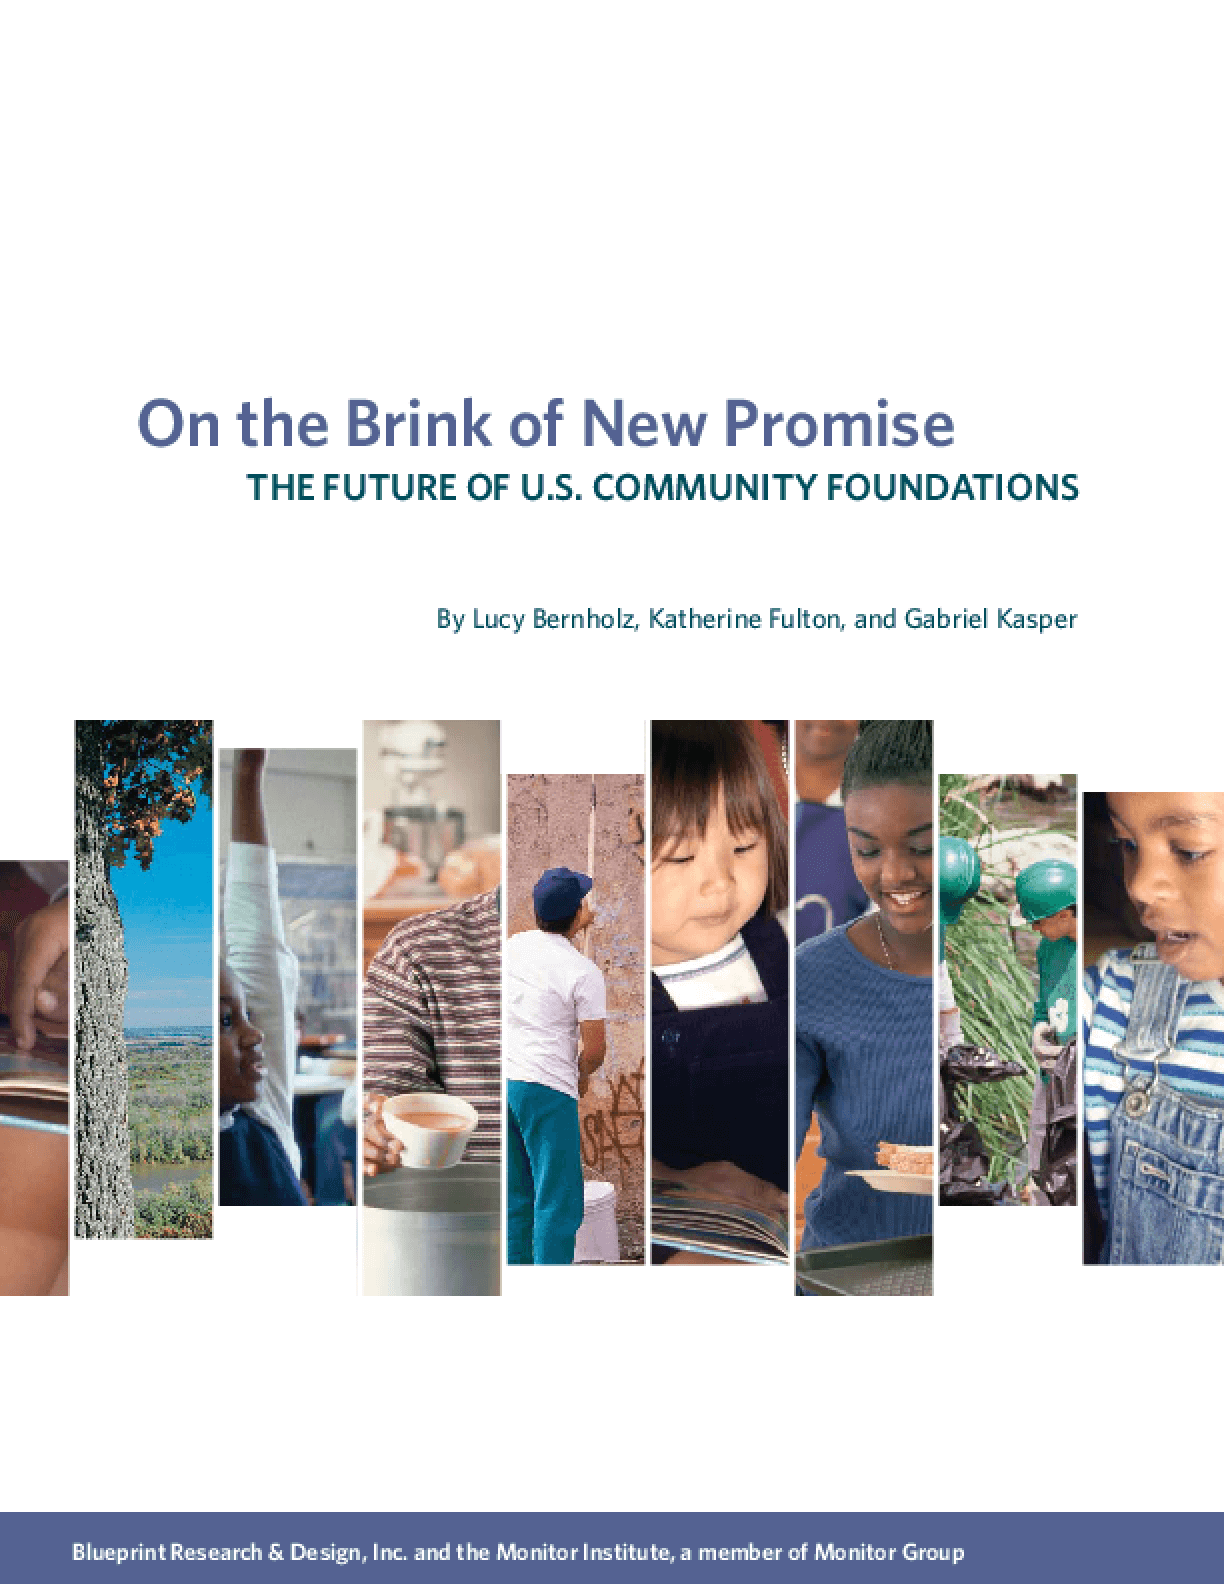 On the Brink of the New Promise: The Future of US Community Foundations